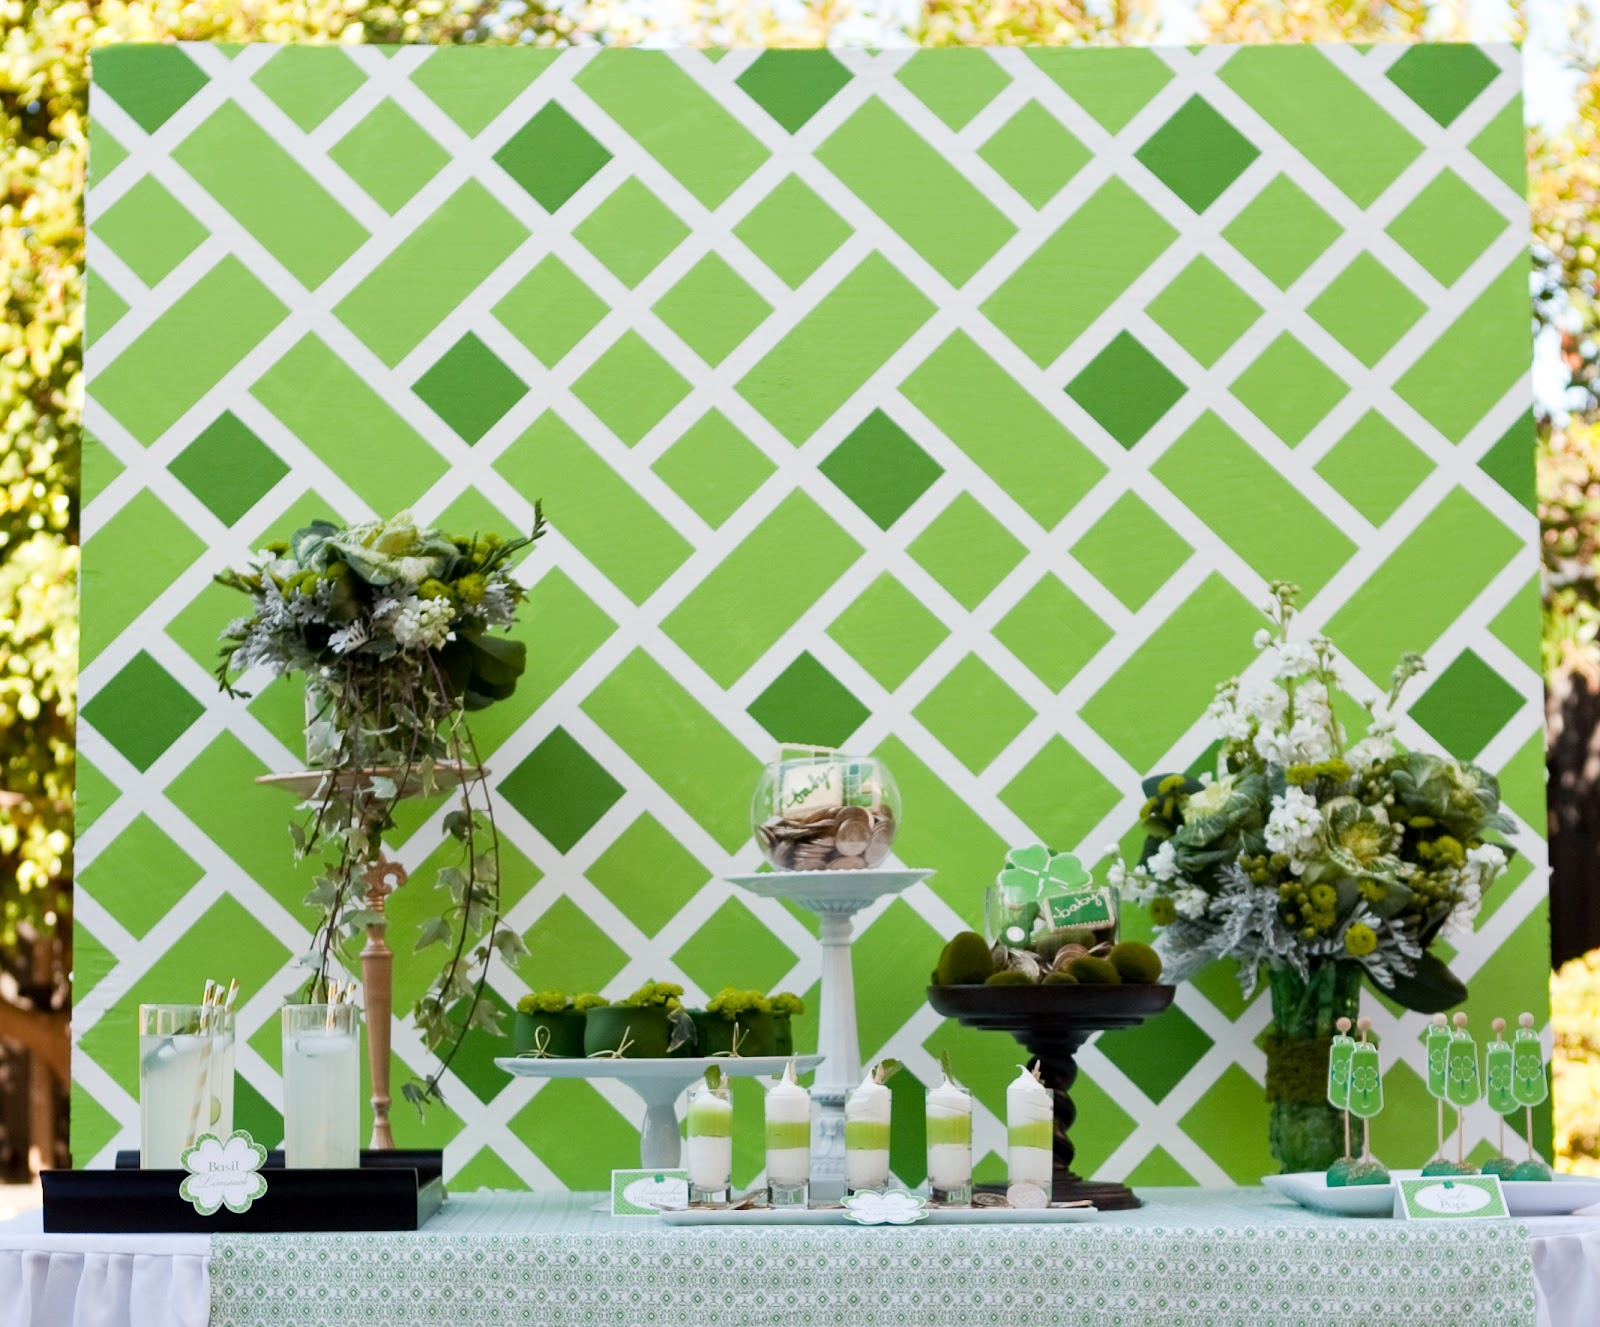 Diy Backdrop Stand For Dessert Table Honeycomb Events And Design Diy Lattice Backdrop